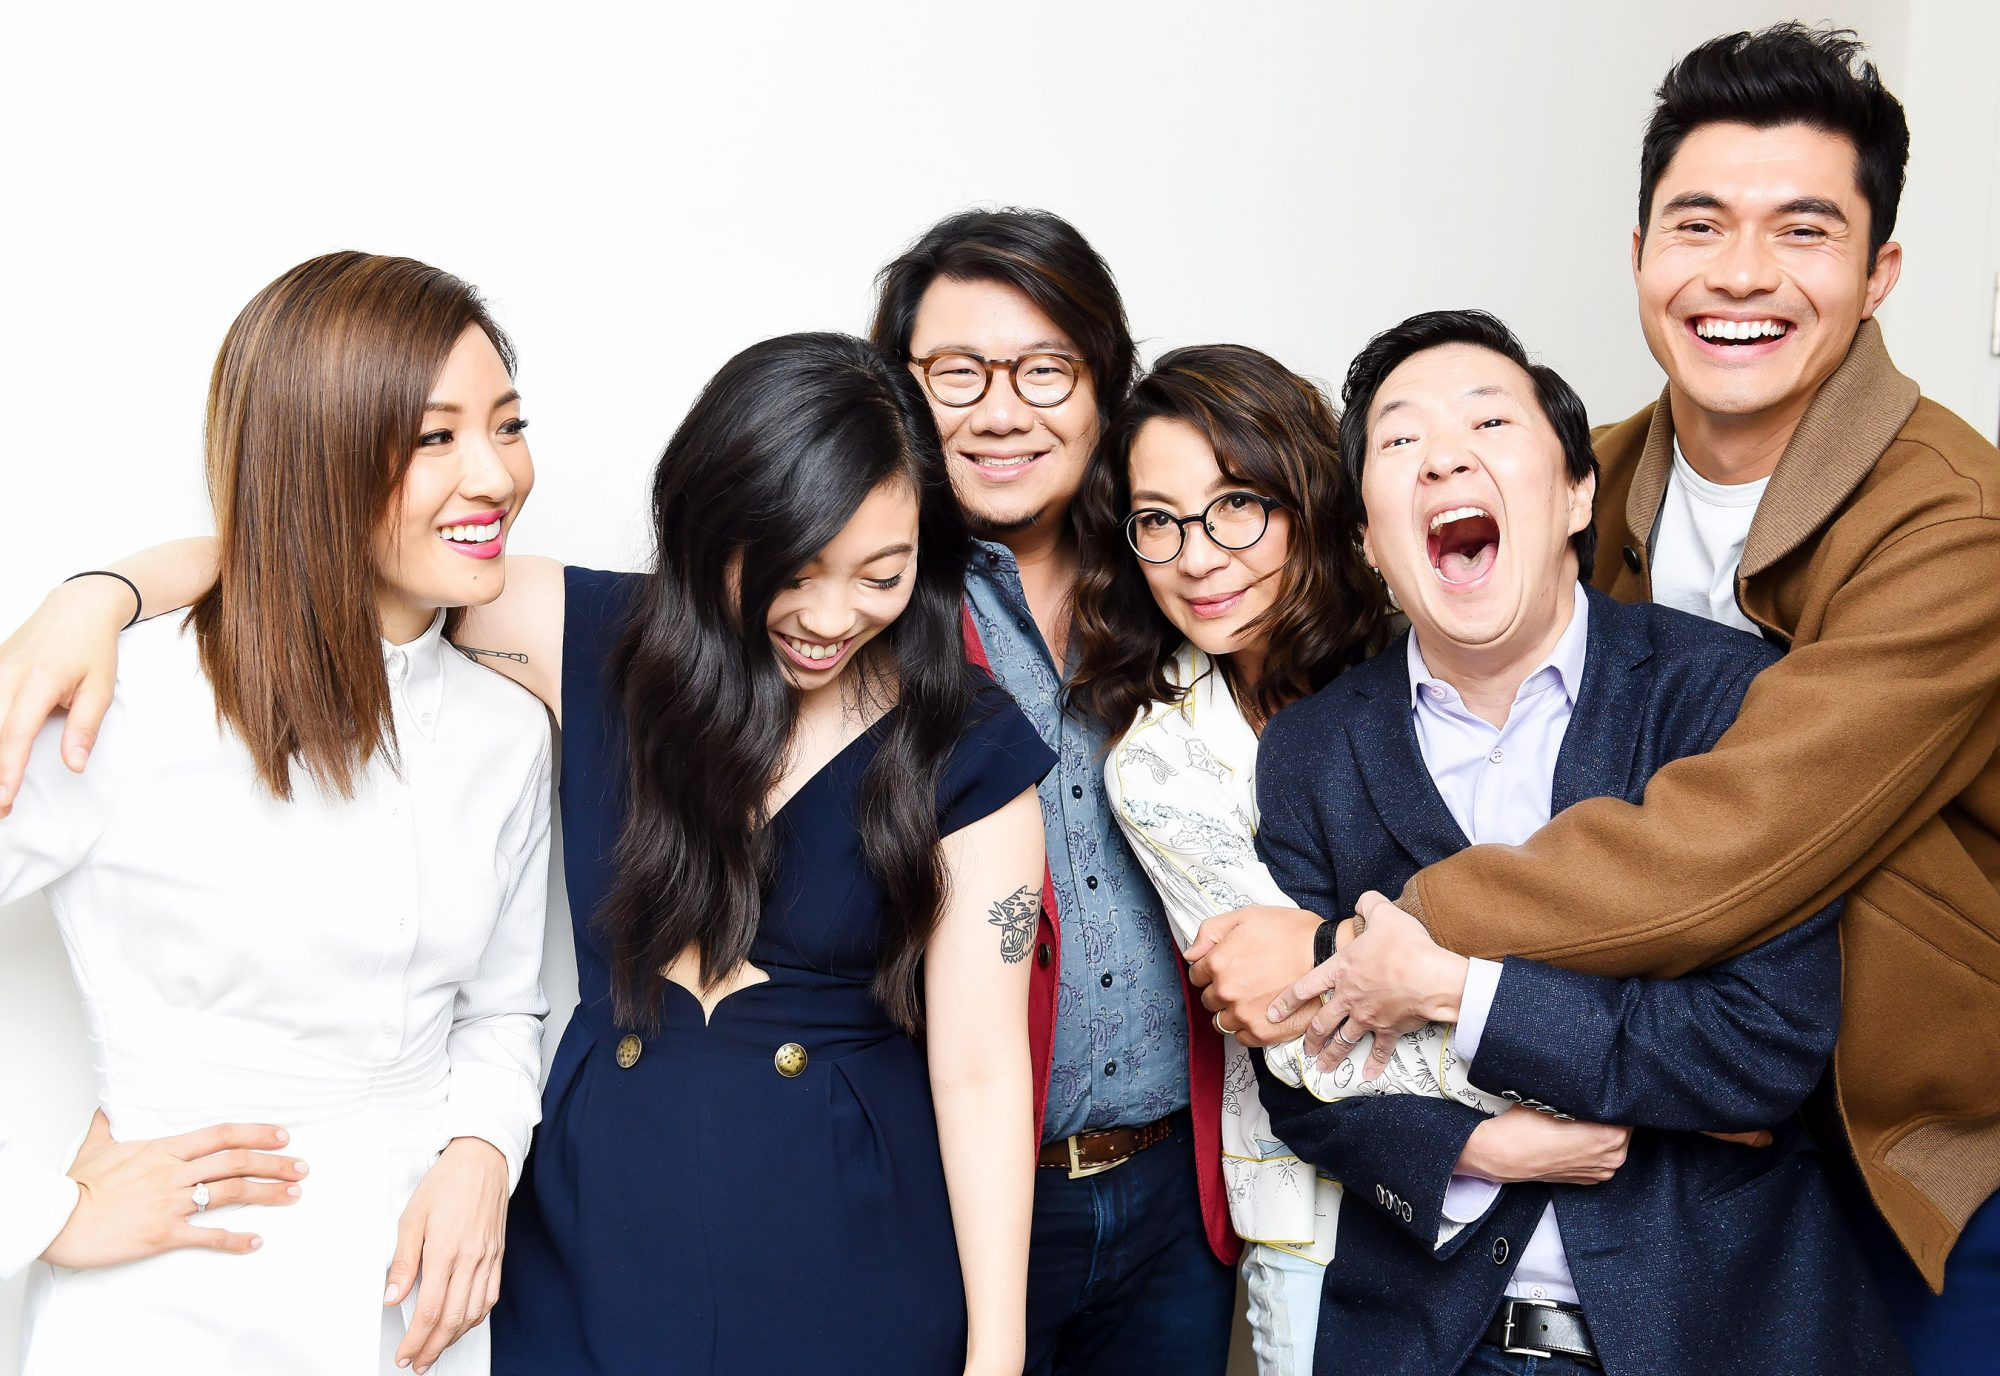 TimesTalks with 'Crazy Rich Asians', New York, USA - 14 Aug 2018